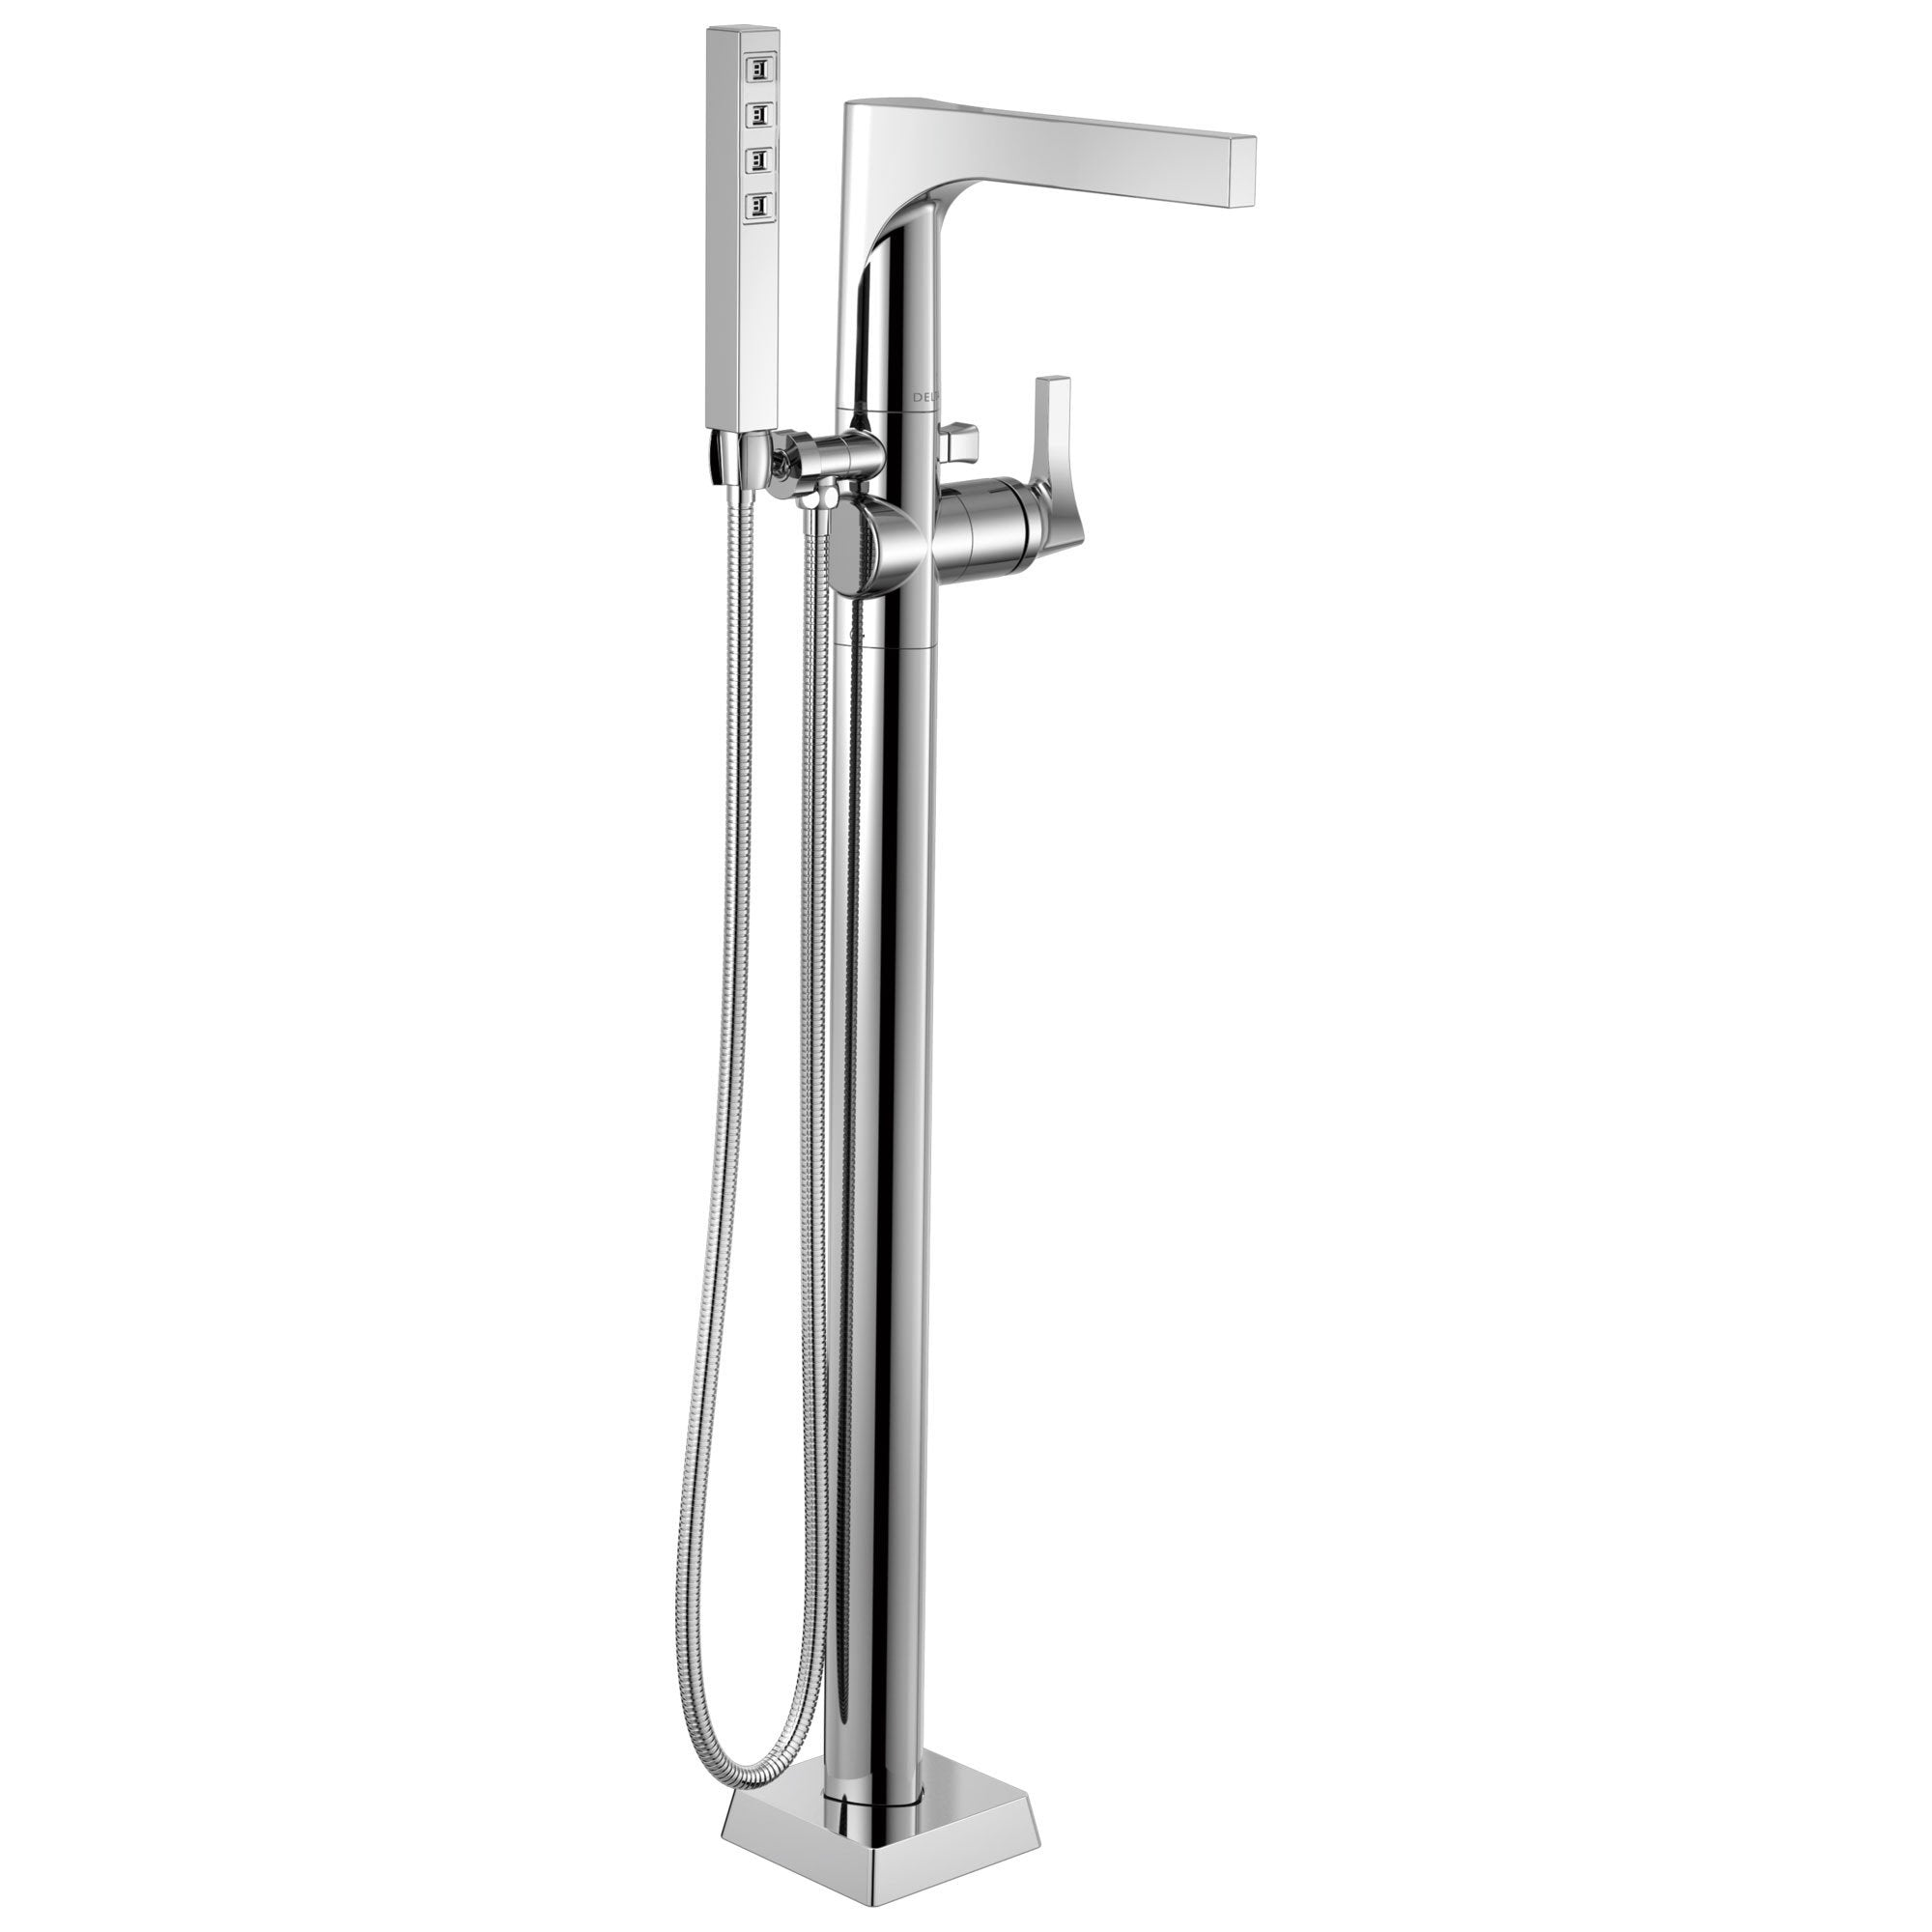 Delta Zura Collection Chrome Modern Floor Mount Freestanding Tub Filler Faucet with Hand Shower Trim Kit only (Requires Rough-in Valve) DT4774FL